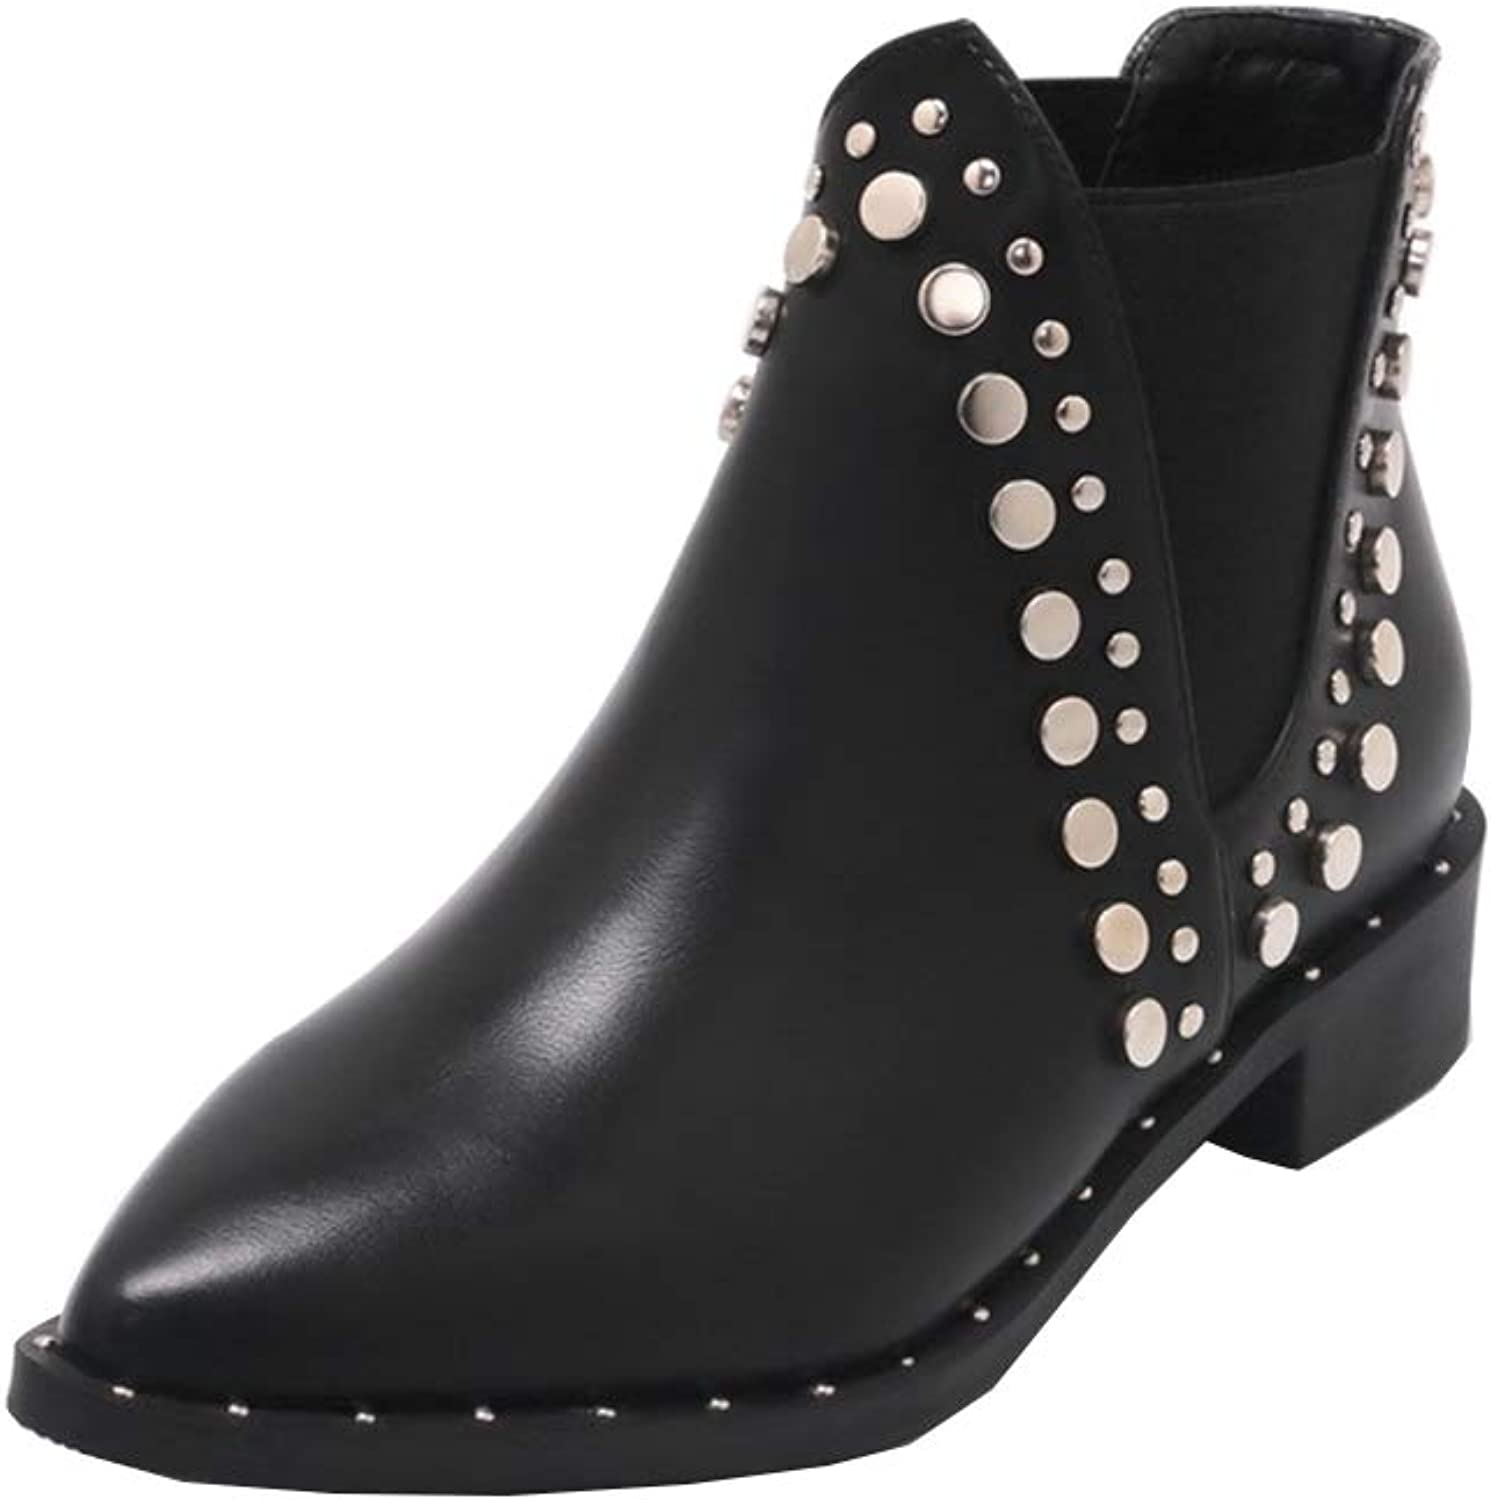 Topcloud Women's Ankle Boots Low Top Ankle Boots Studded Ankle Boots Chelsea Boots with Block Heel